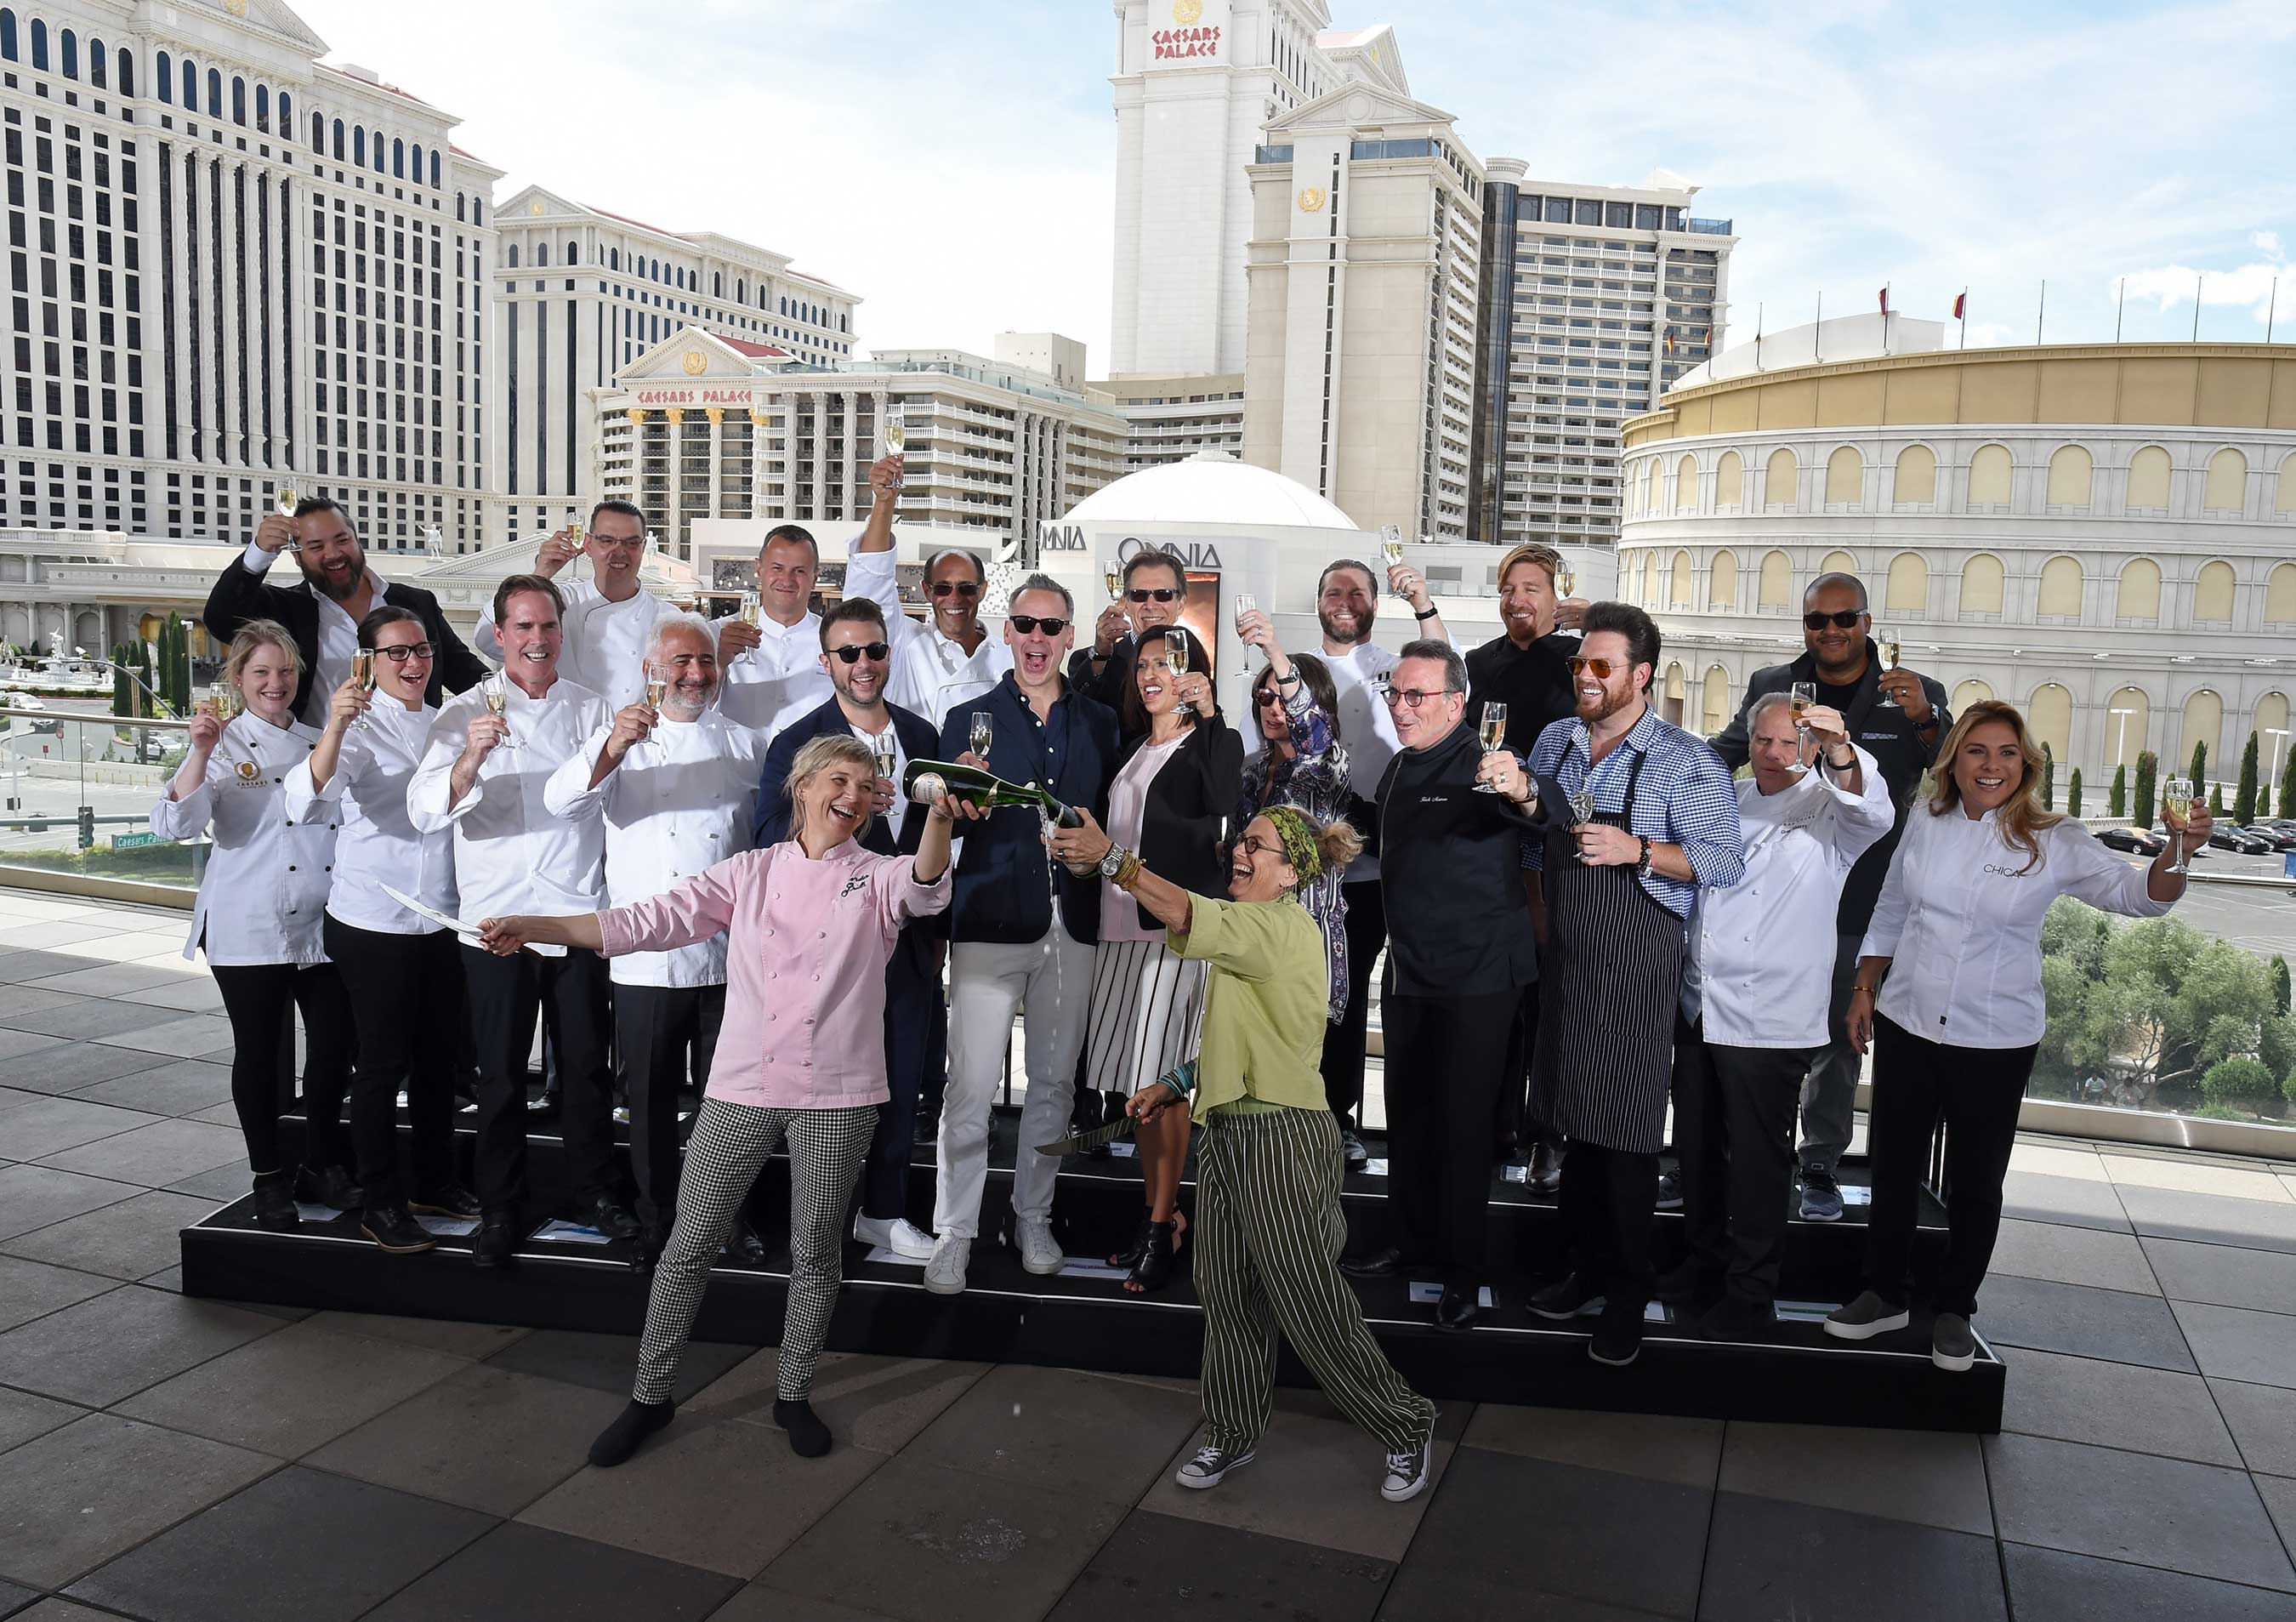 Chefs Susan Feniger and Mary Sue Milliken mark the beginning of Vegas Uncork'd by Bon Appétit with a champagne saber-off at The LINQ Hotel & Casino in Las Vegas (credit Ethan Miller, Getty Images)